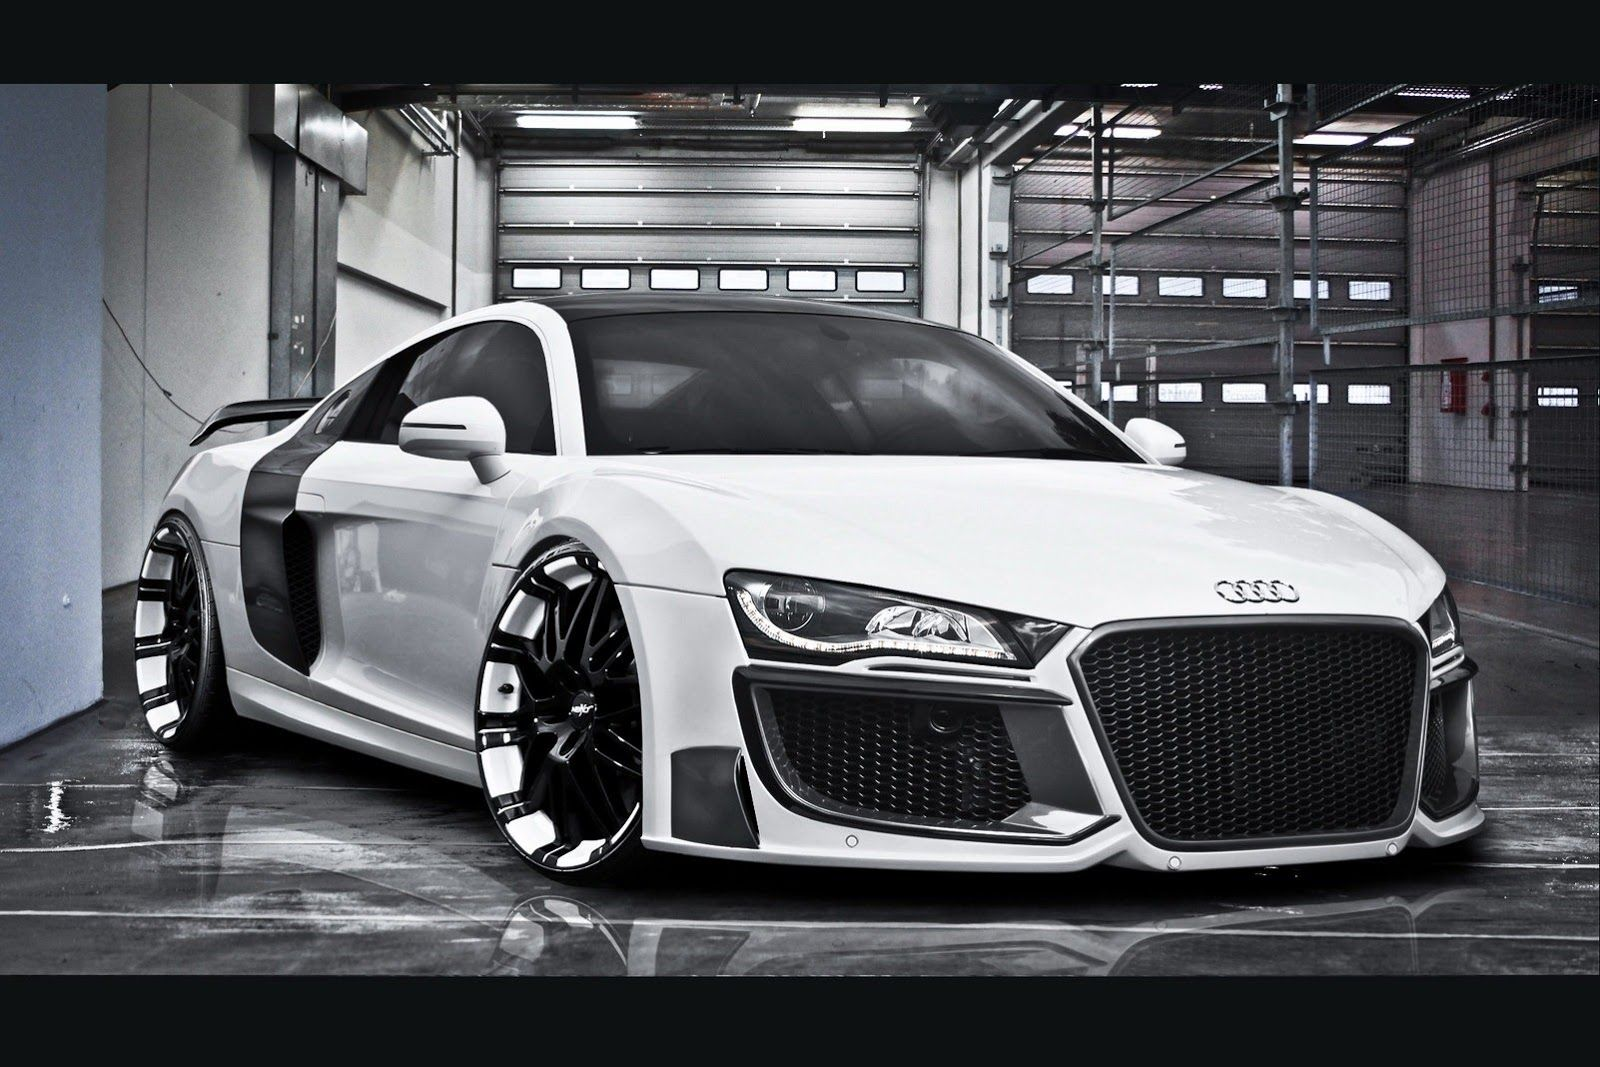 Best 25 audi r8 wallpaper ideas on pinterest audi r8 top speed audi convertible and audi r8 convertible